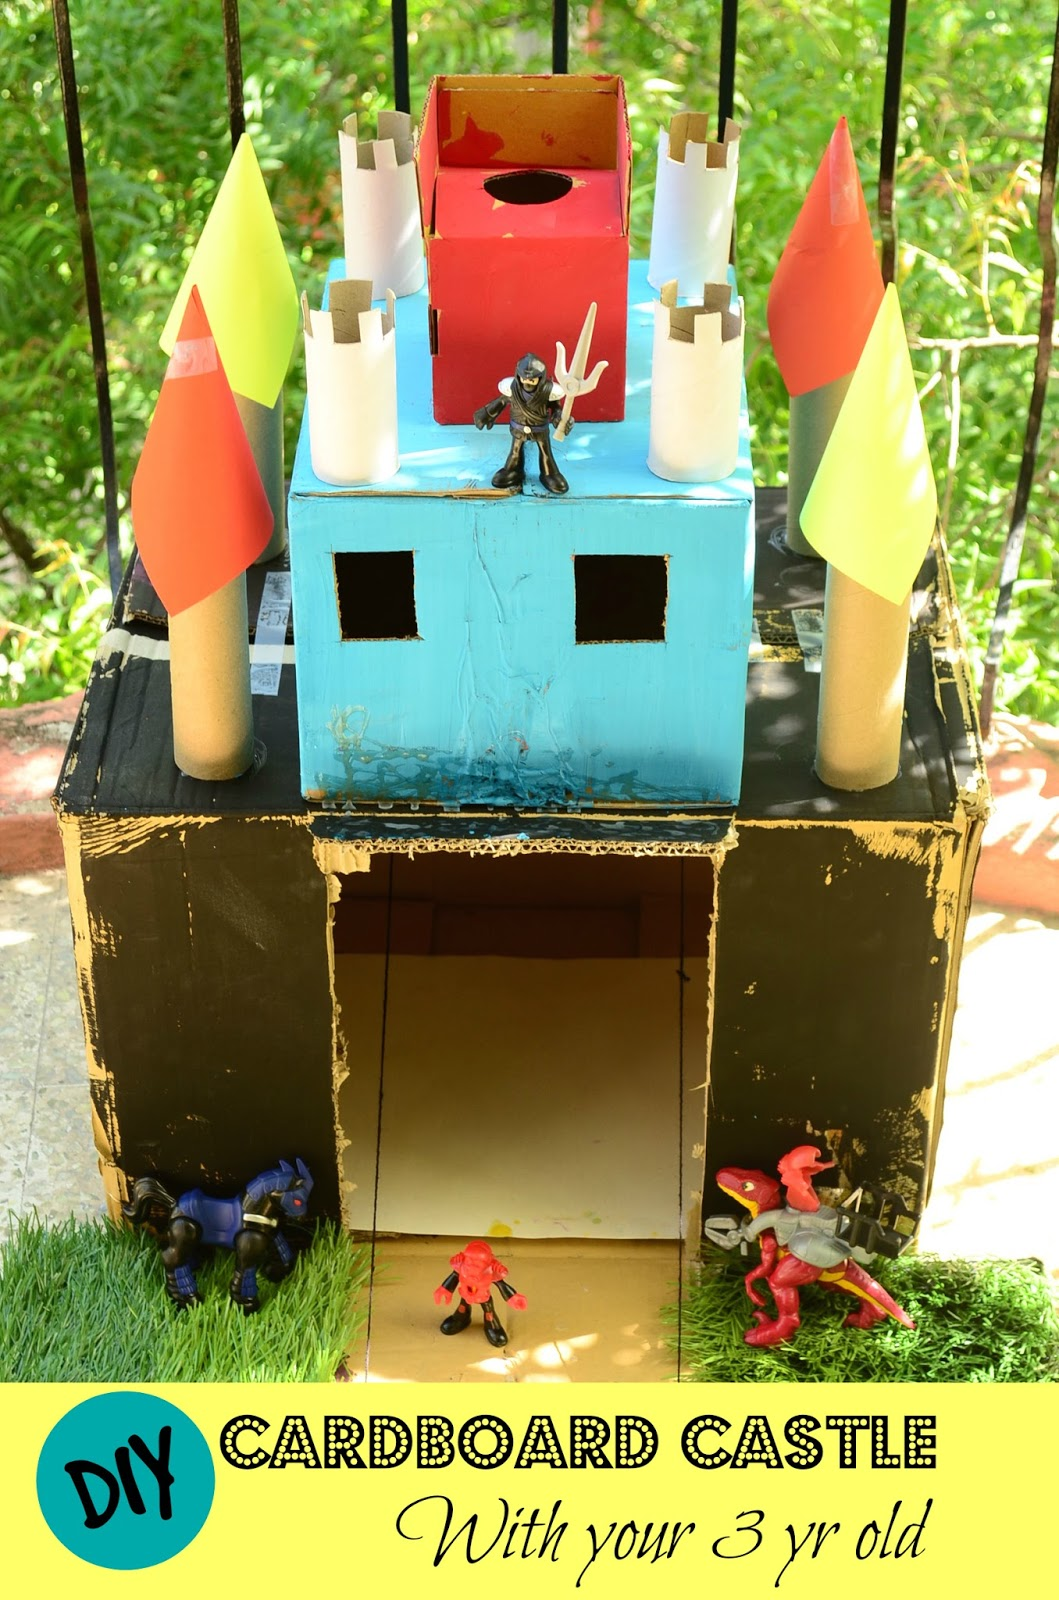 DIY Cardboard Castle - Featured Post HMLP 45